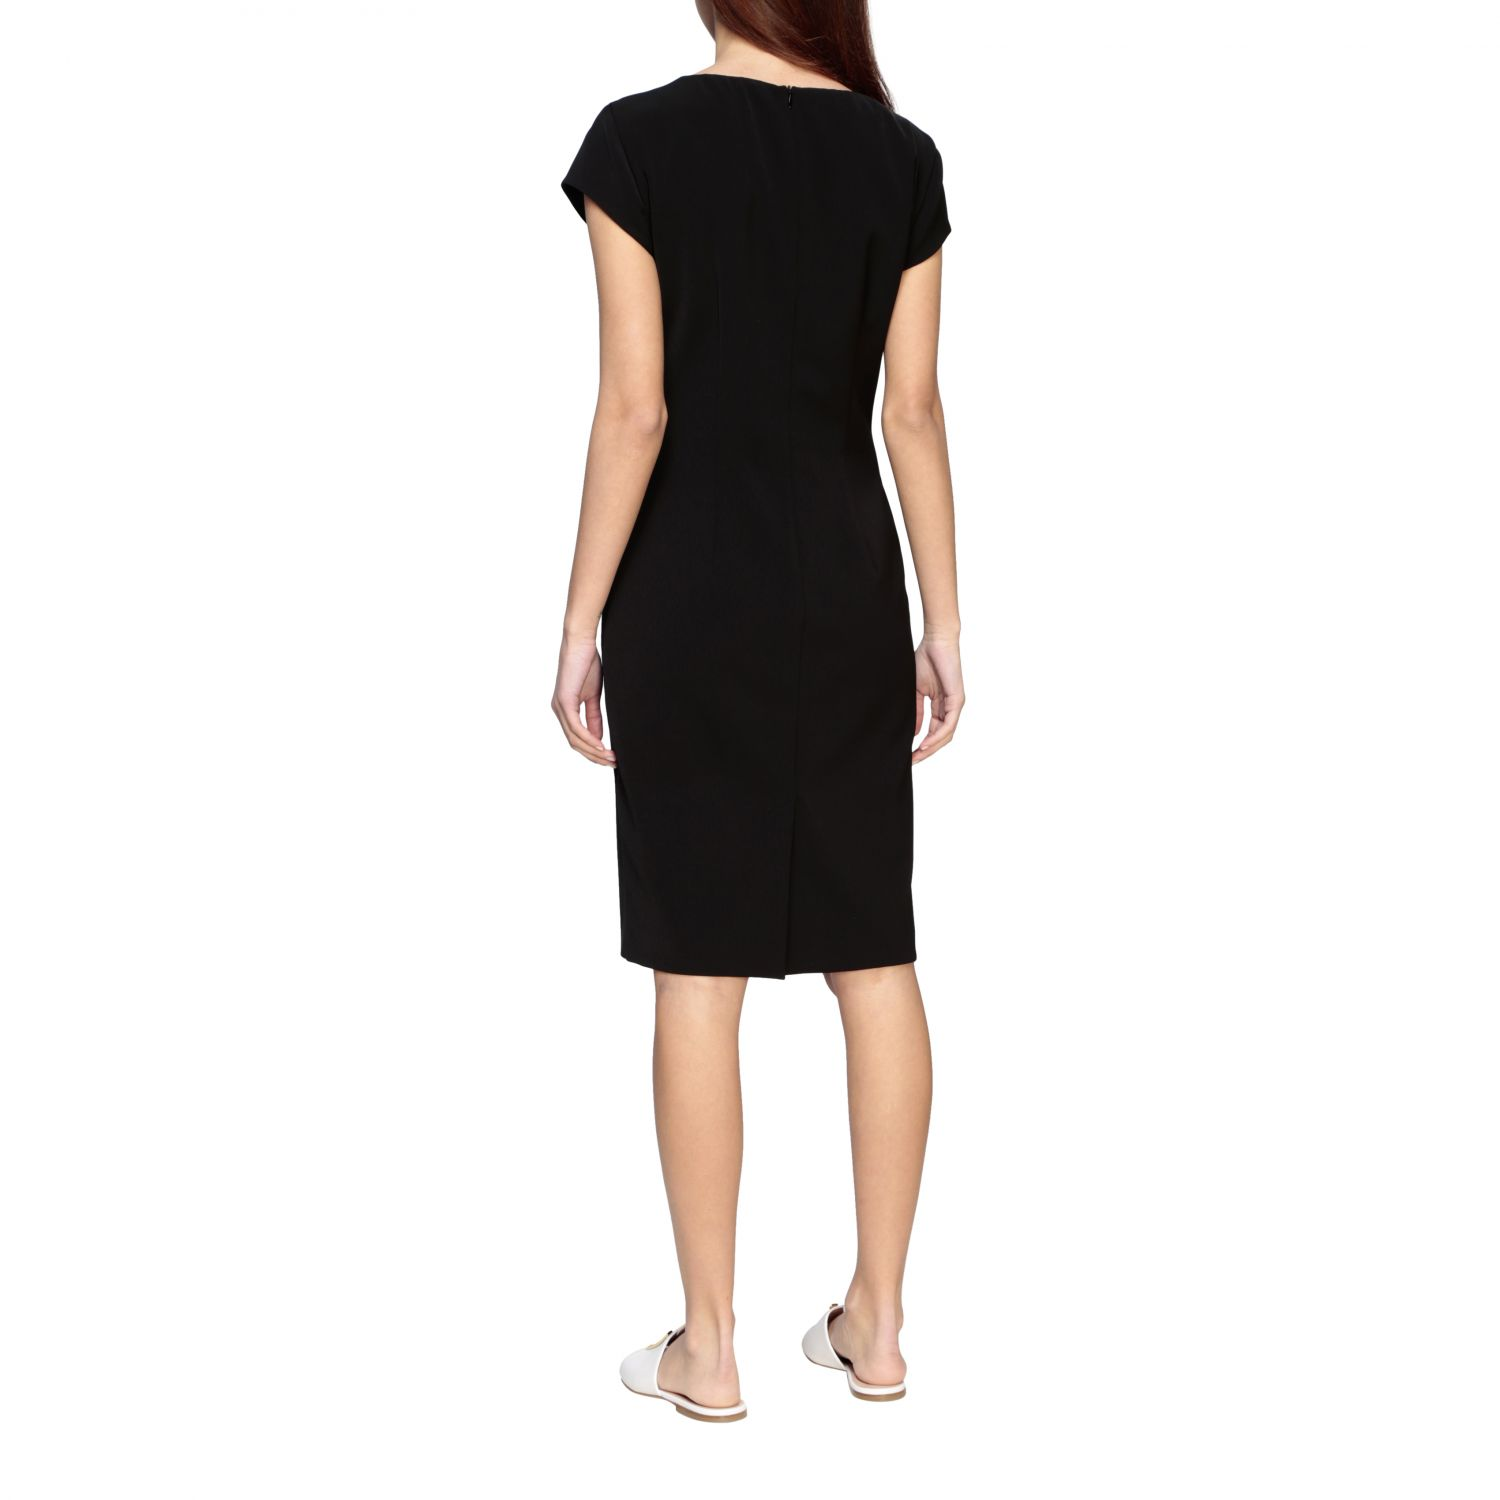 Dress Boutique Moschino: Dress women Boutique Moschino black 2